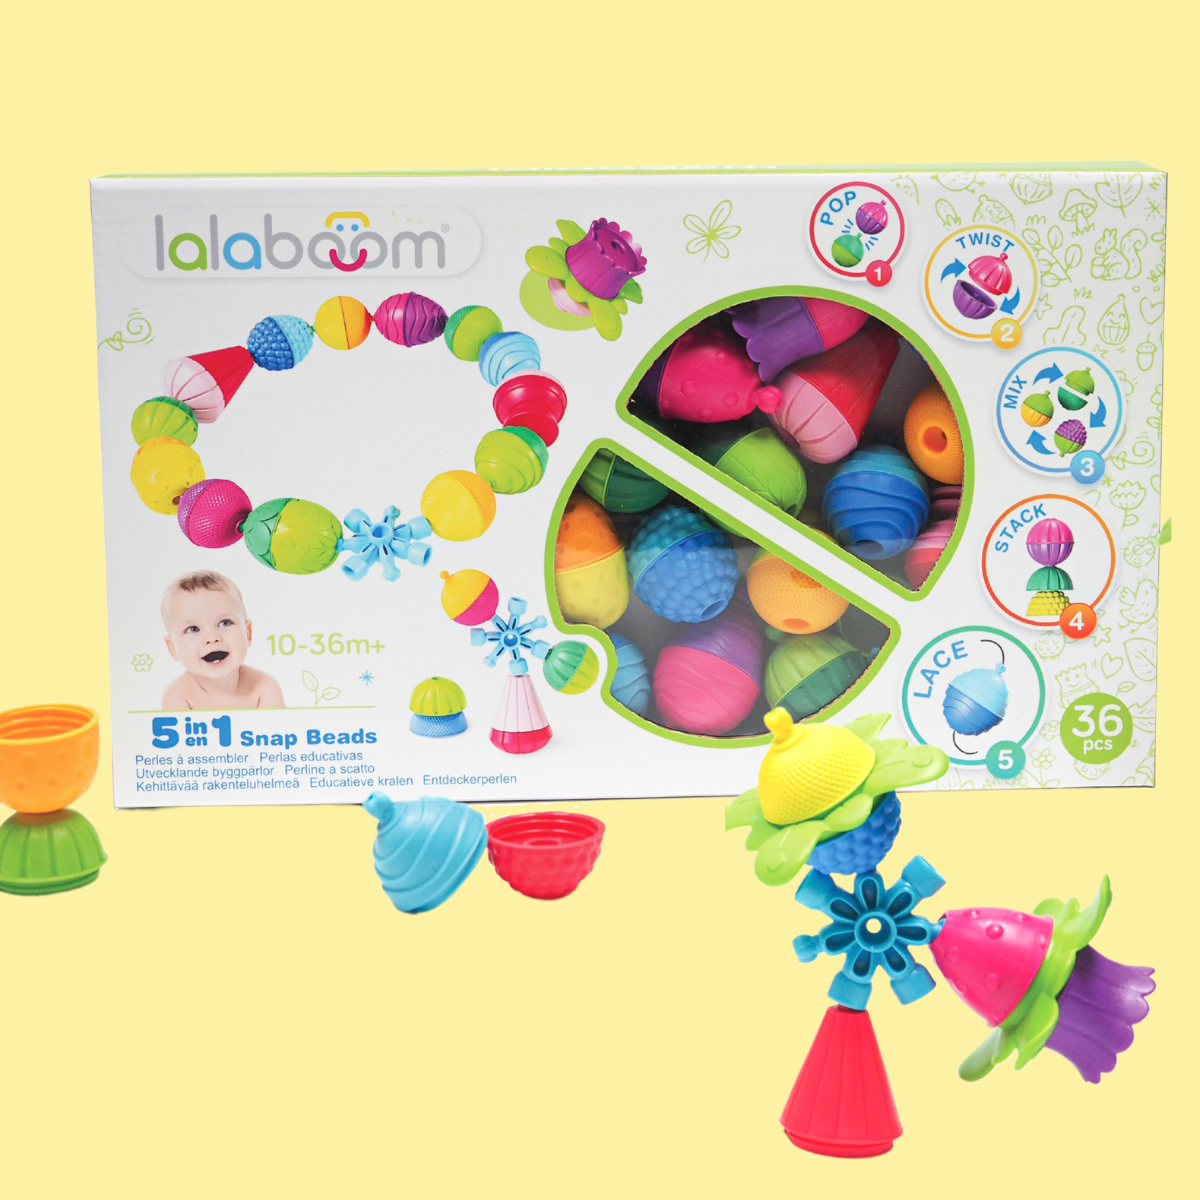 Lalaboom box of 36 pieces with yellow background with some brightly-coloured beads out of the box.